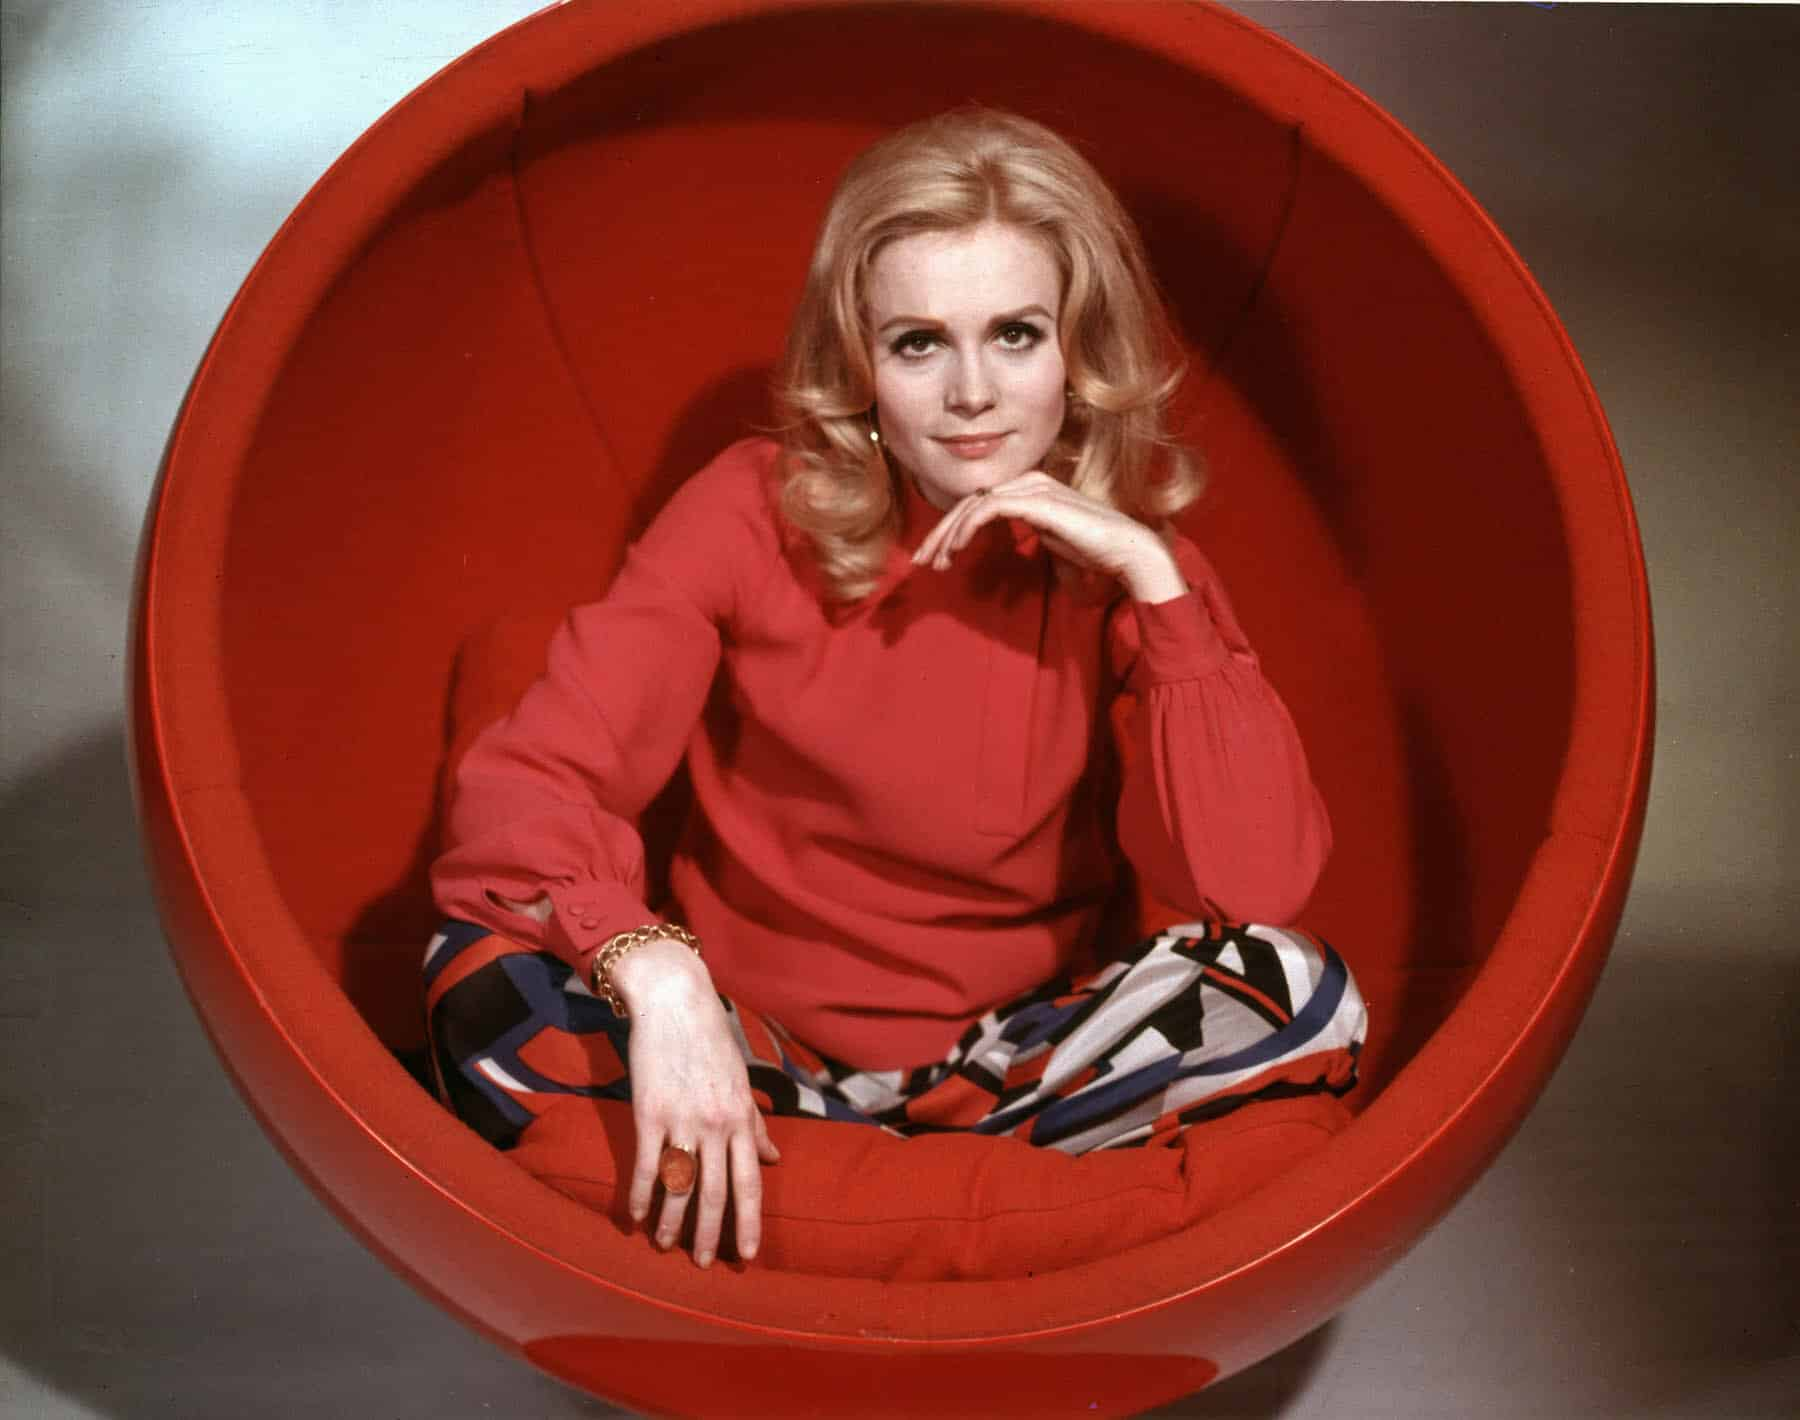 Françoise Dorléac in Eero Aarnio's Ball chair for the film Billion Dollar Brain